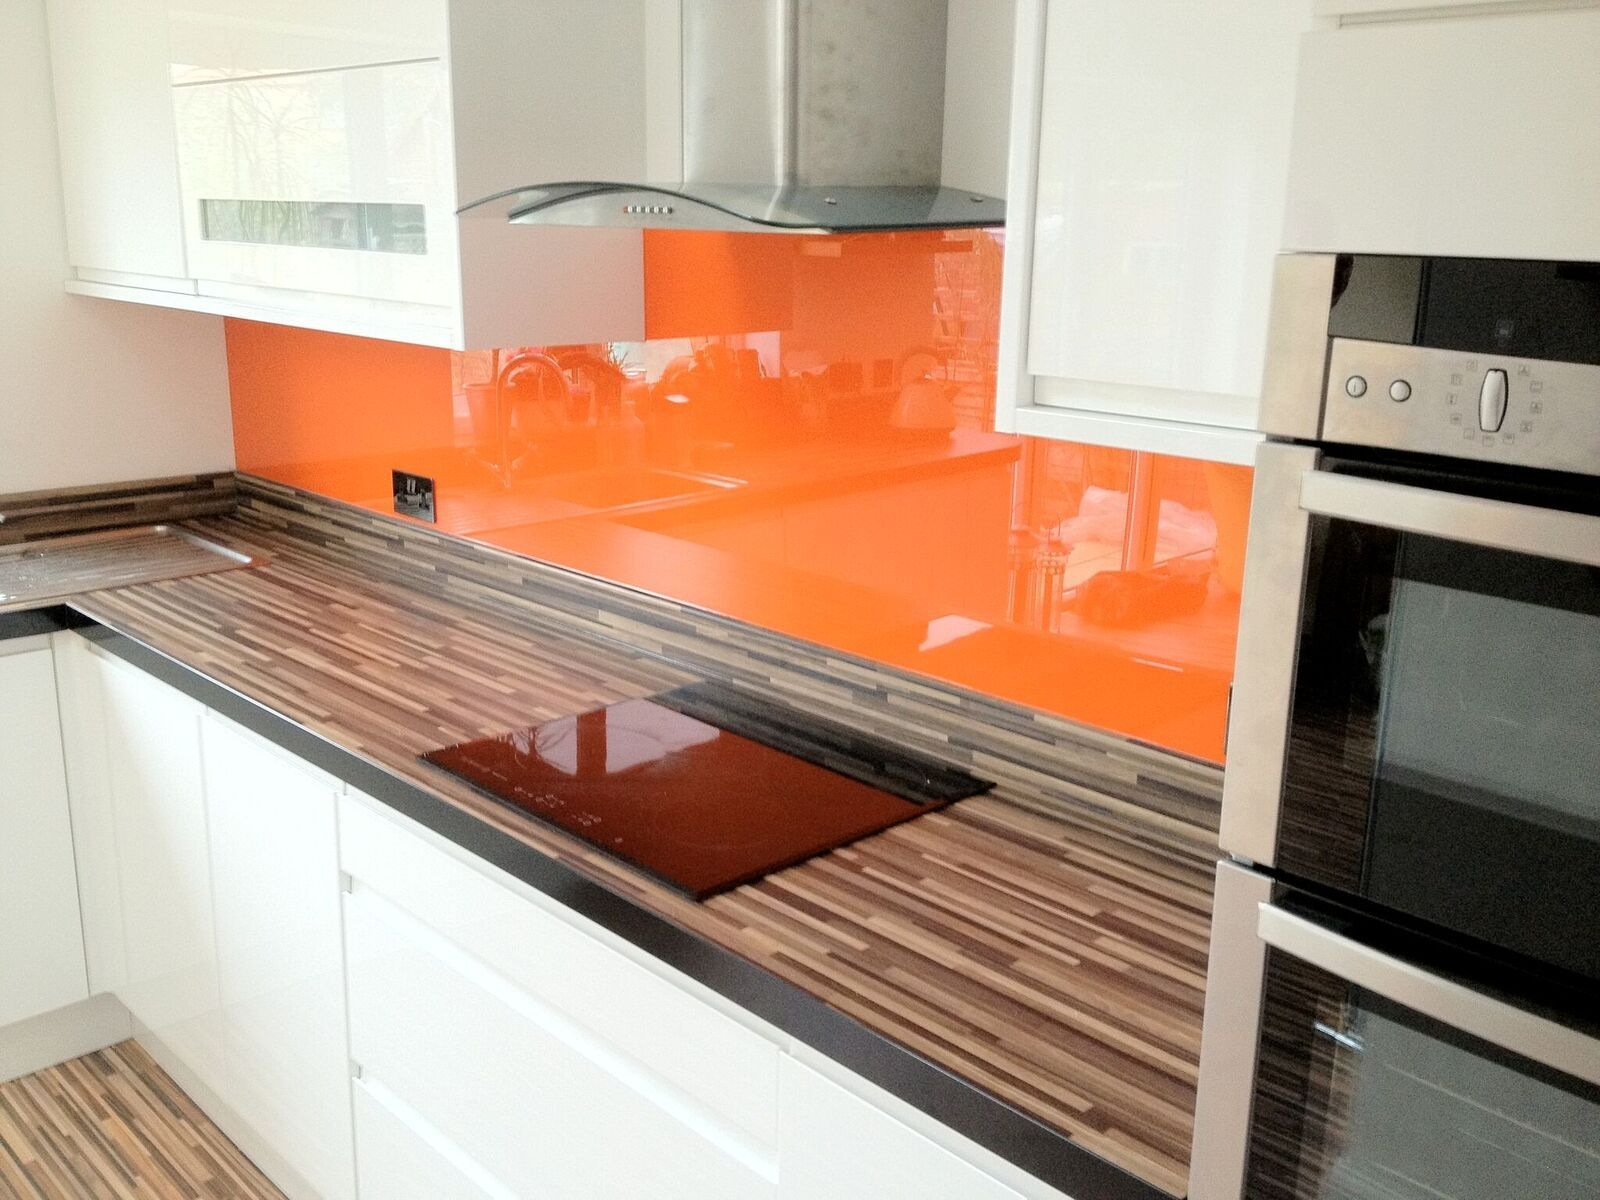 Orange Coloured Painted Glass Splashback Livening Up This Kitchen